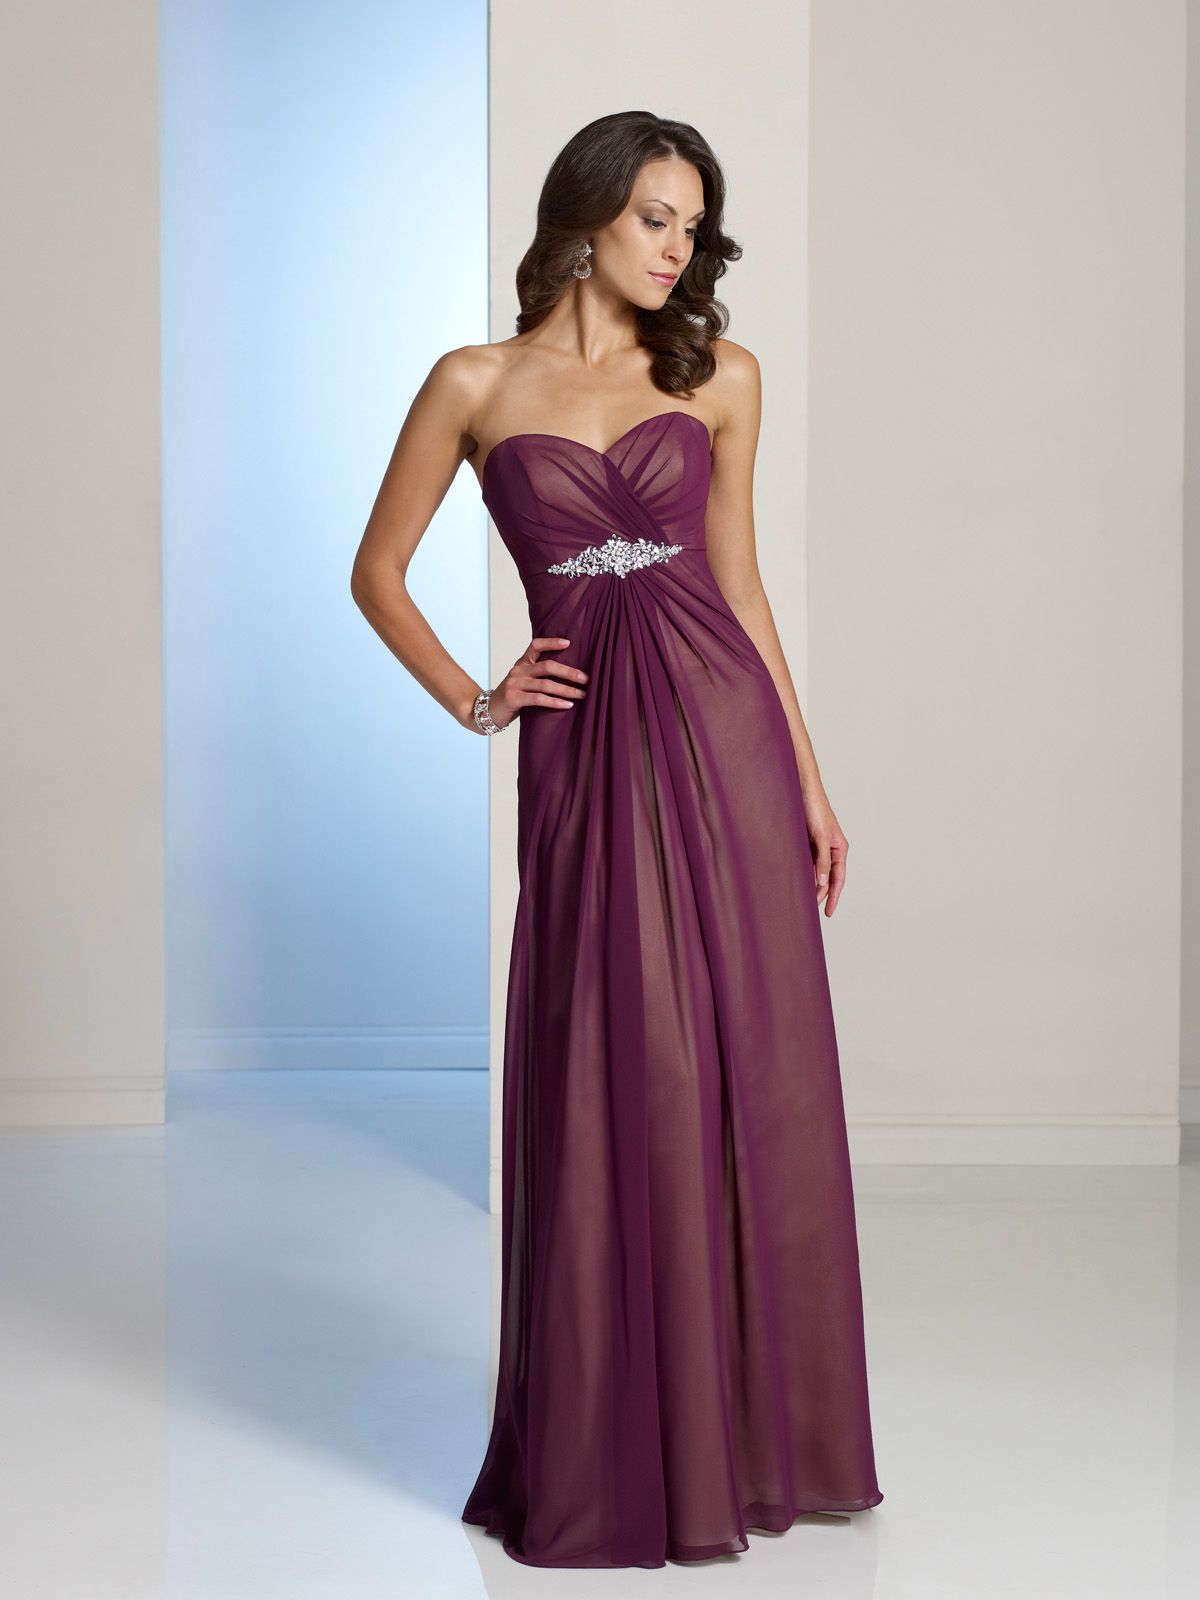 Strapless chiffon over satin aline gown with sweetheart neckline